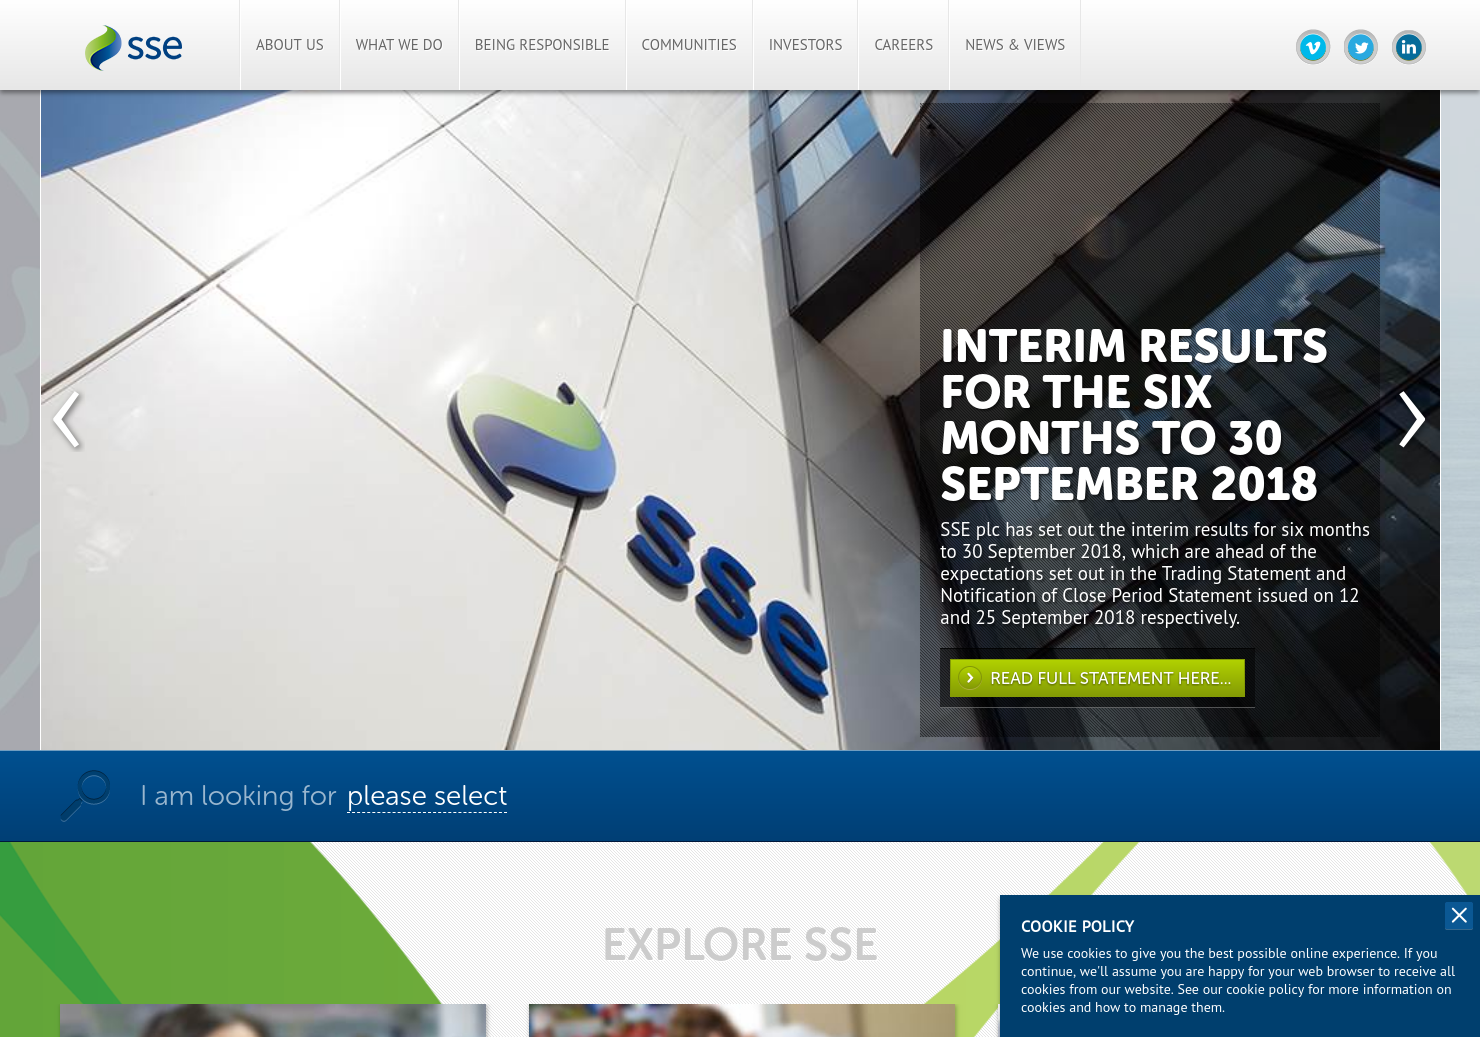 SSE Home Page